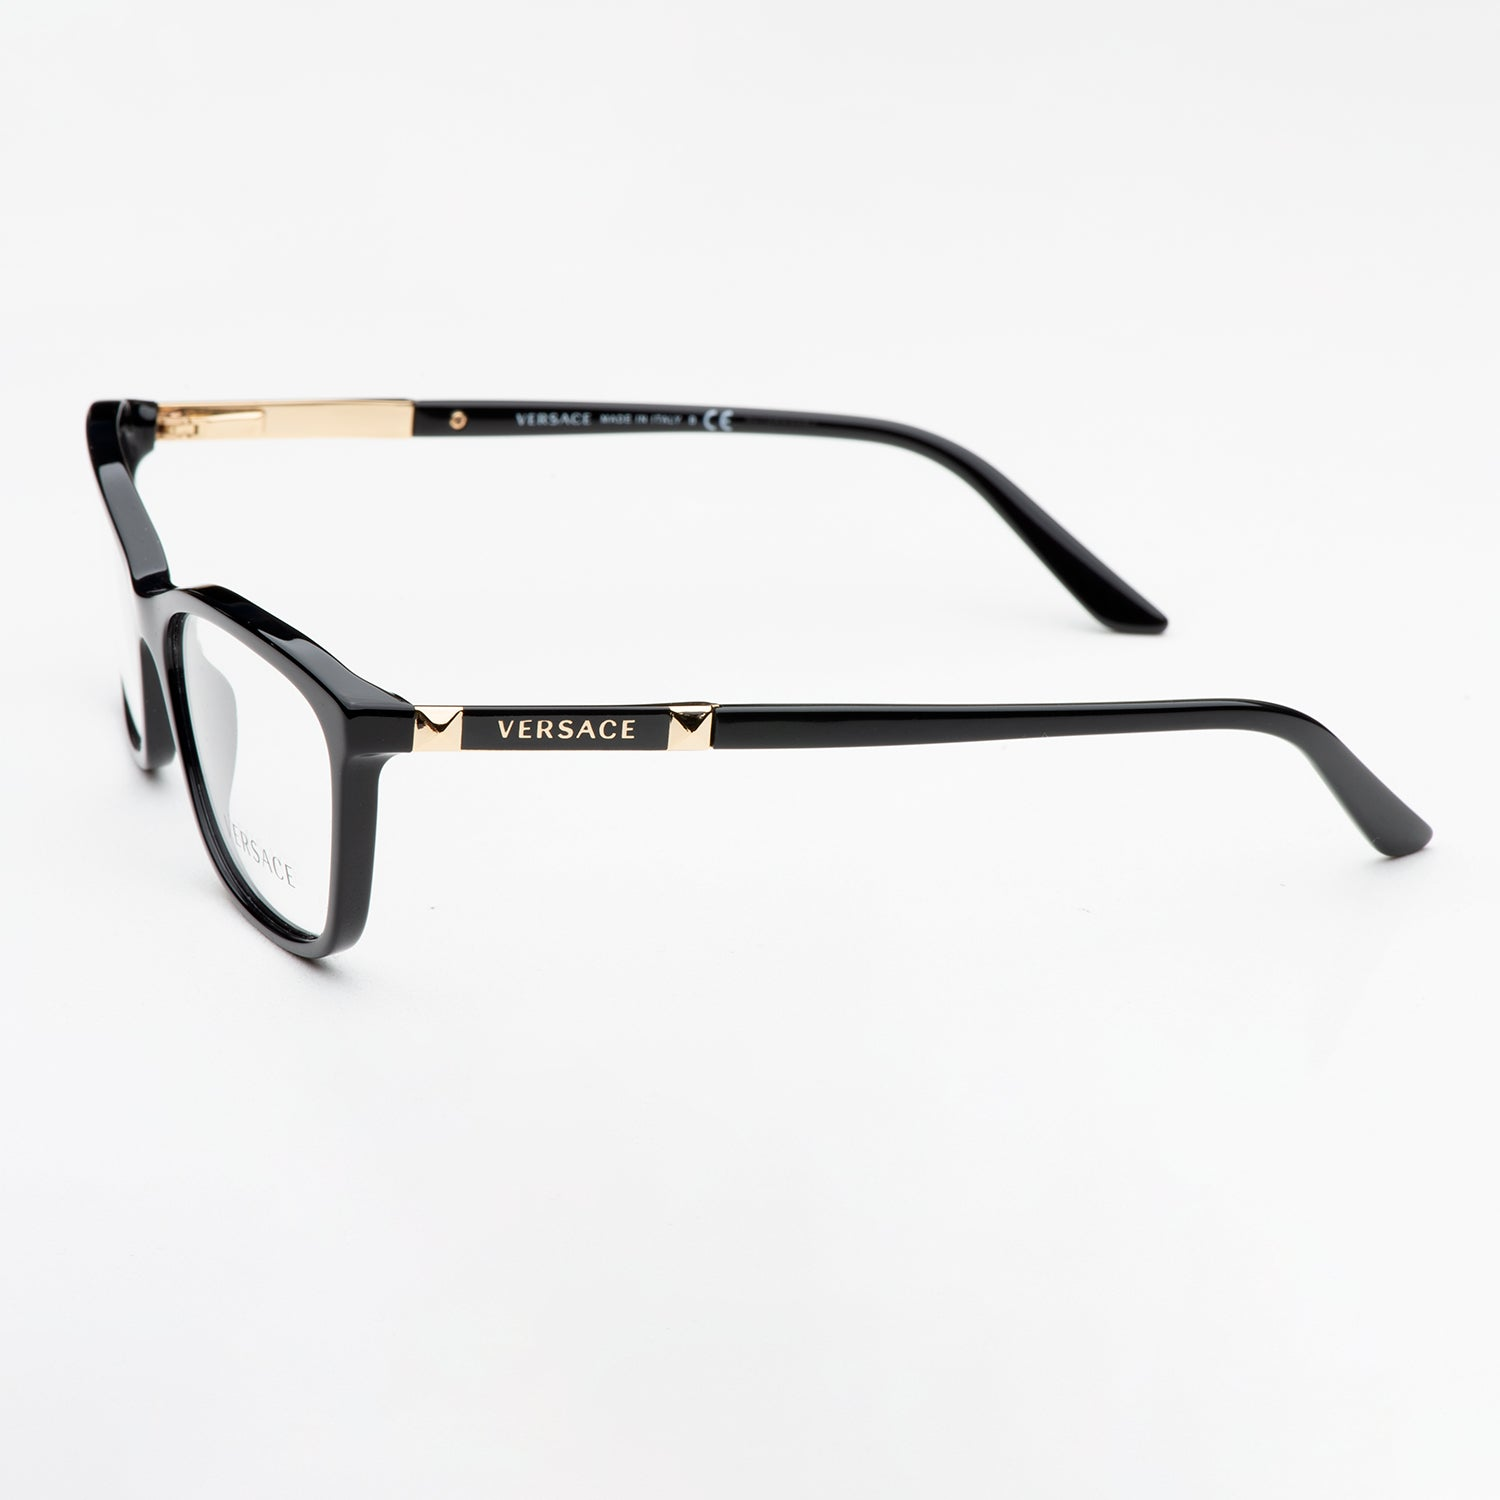 Versace 3186 Prescription Eyeglasses